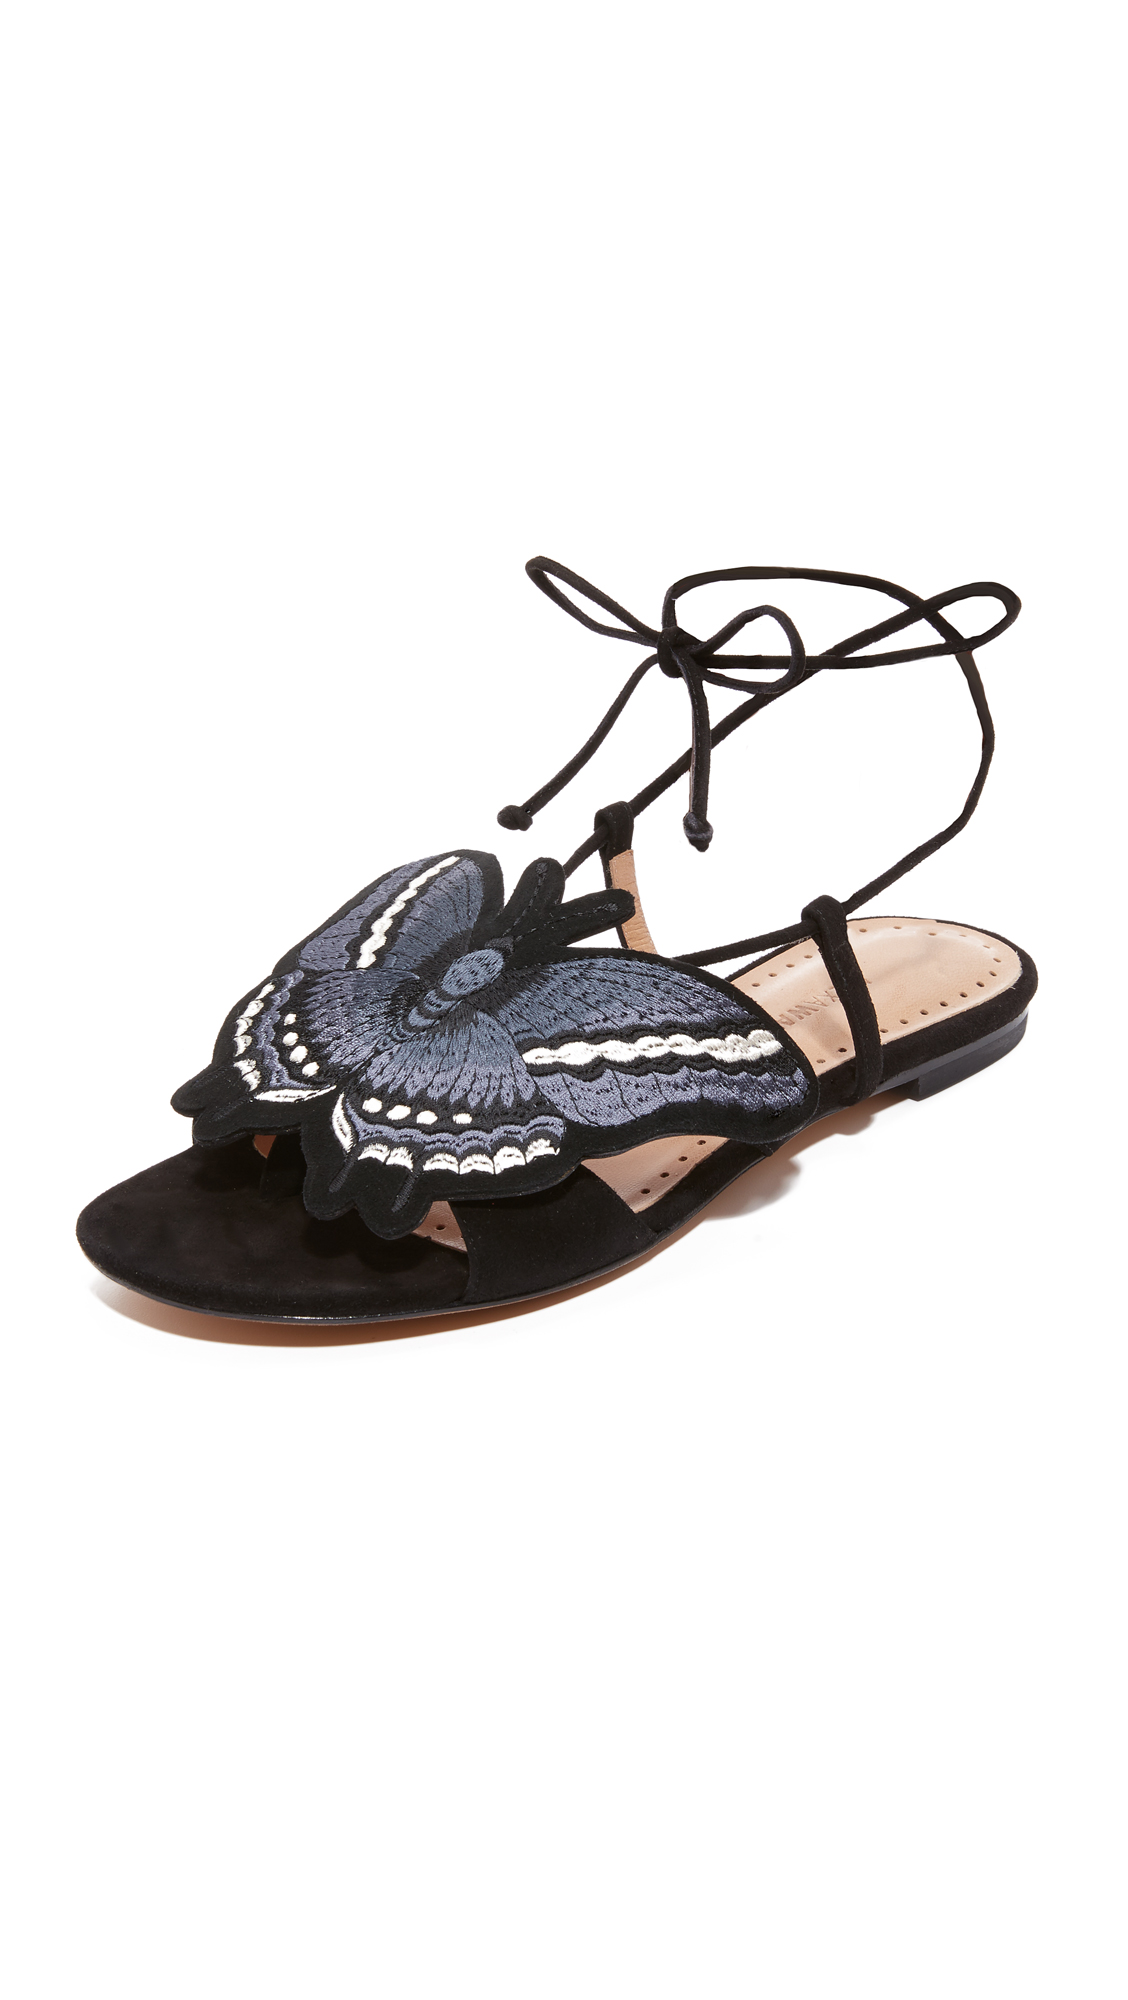 Photo of Alexa Wagner Butterfly Flats Black - Alexa Wagner online